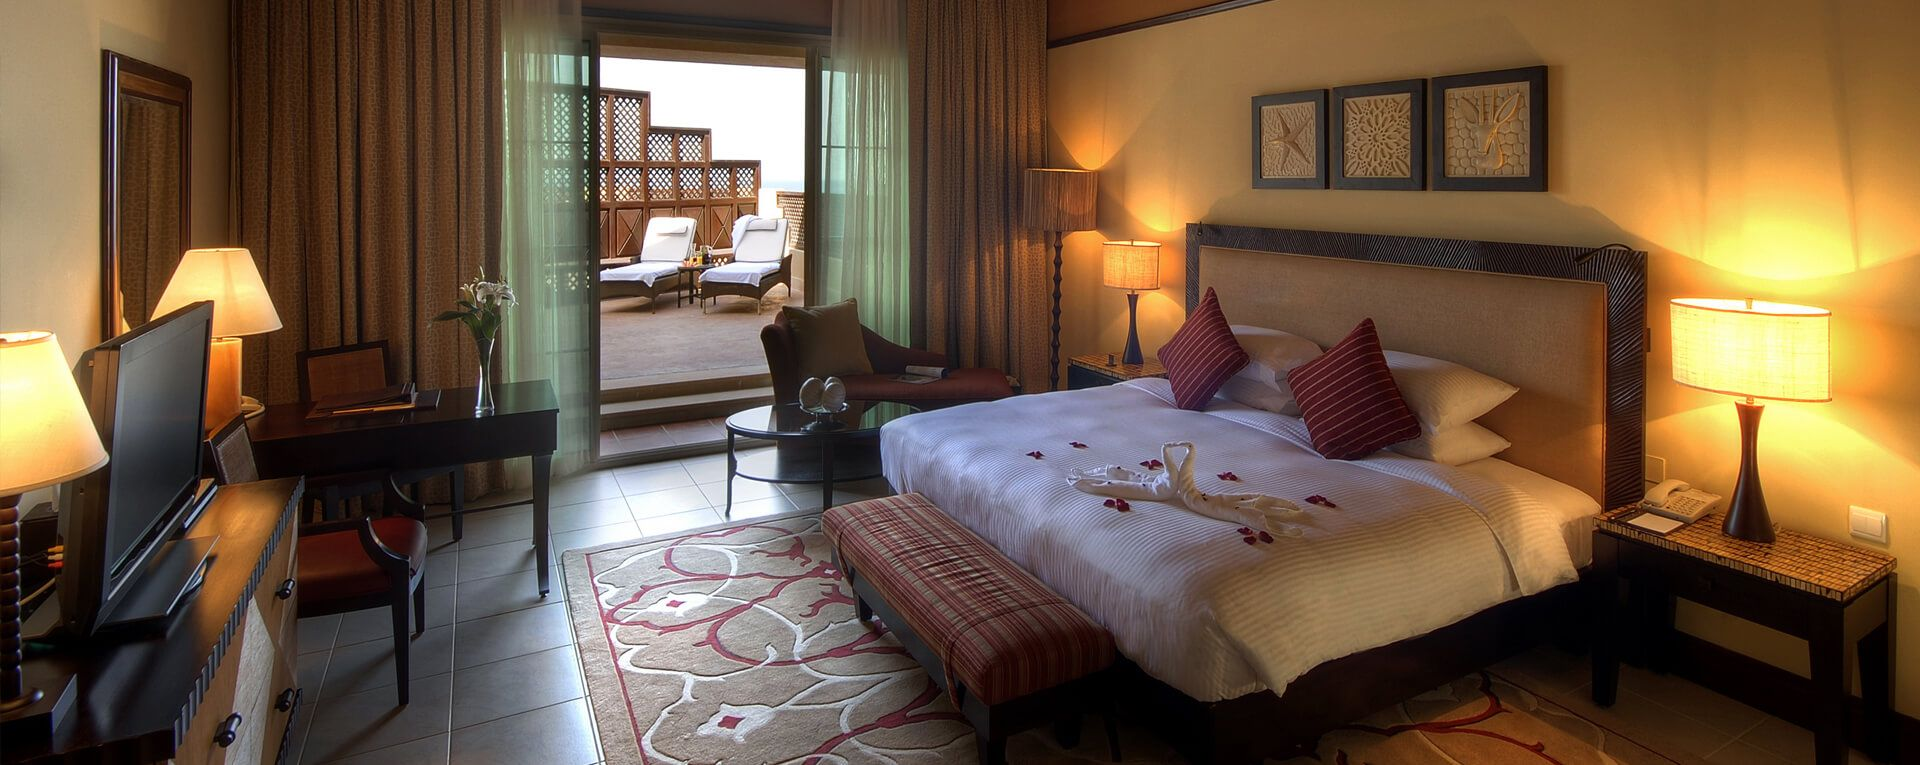 Anantara Desert Islands Resort & Spa